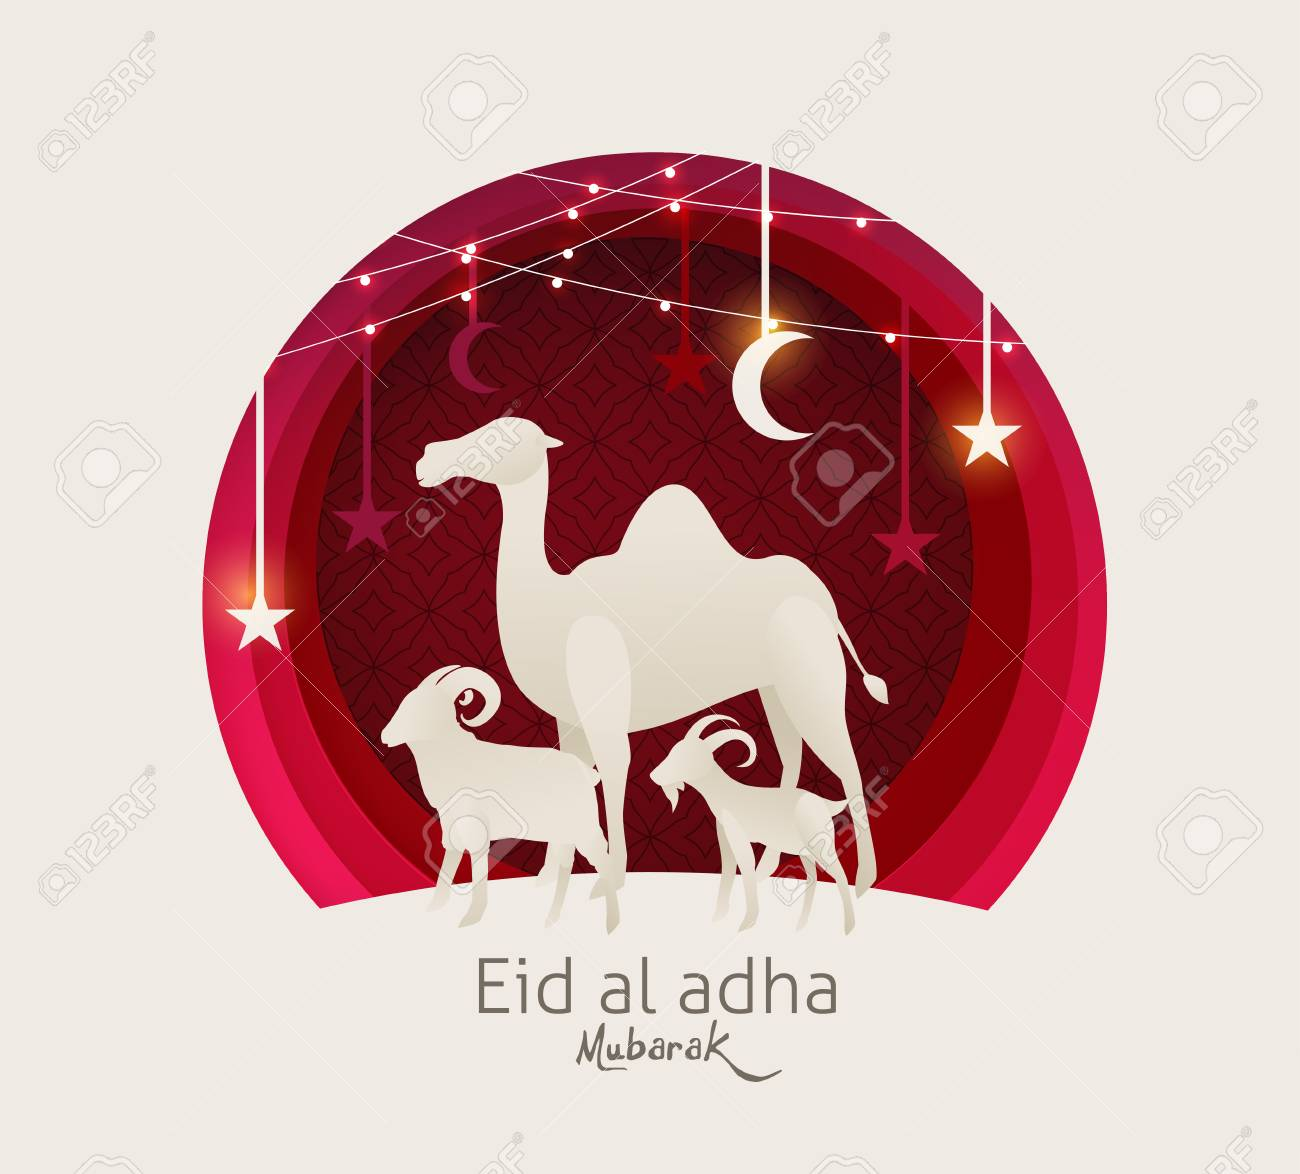 Eid Al Adha Mubarak the celebration of Muslim community festival background design with camel sheep and goat paper cut style.Glowing lights Vector Illustration - 106369293